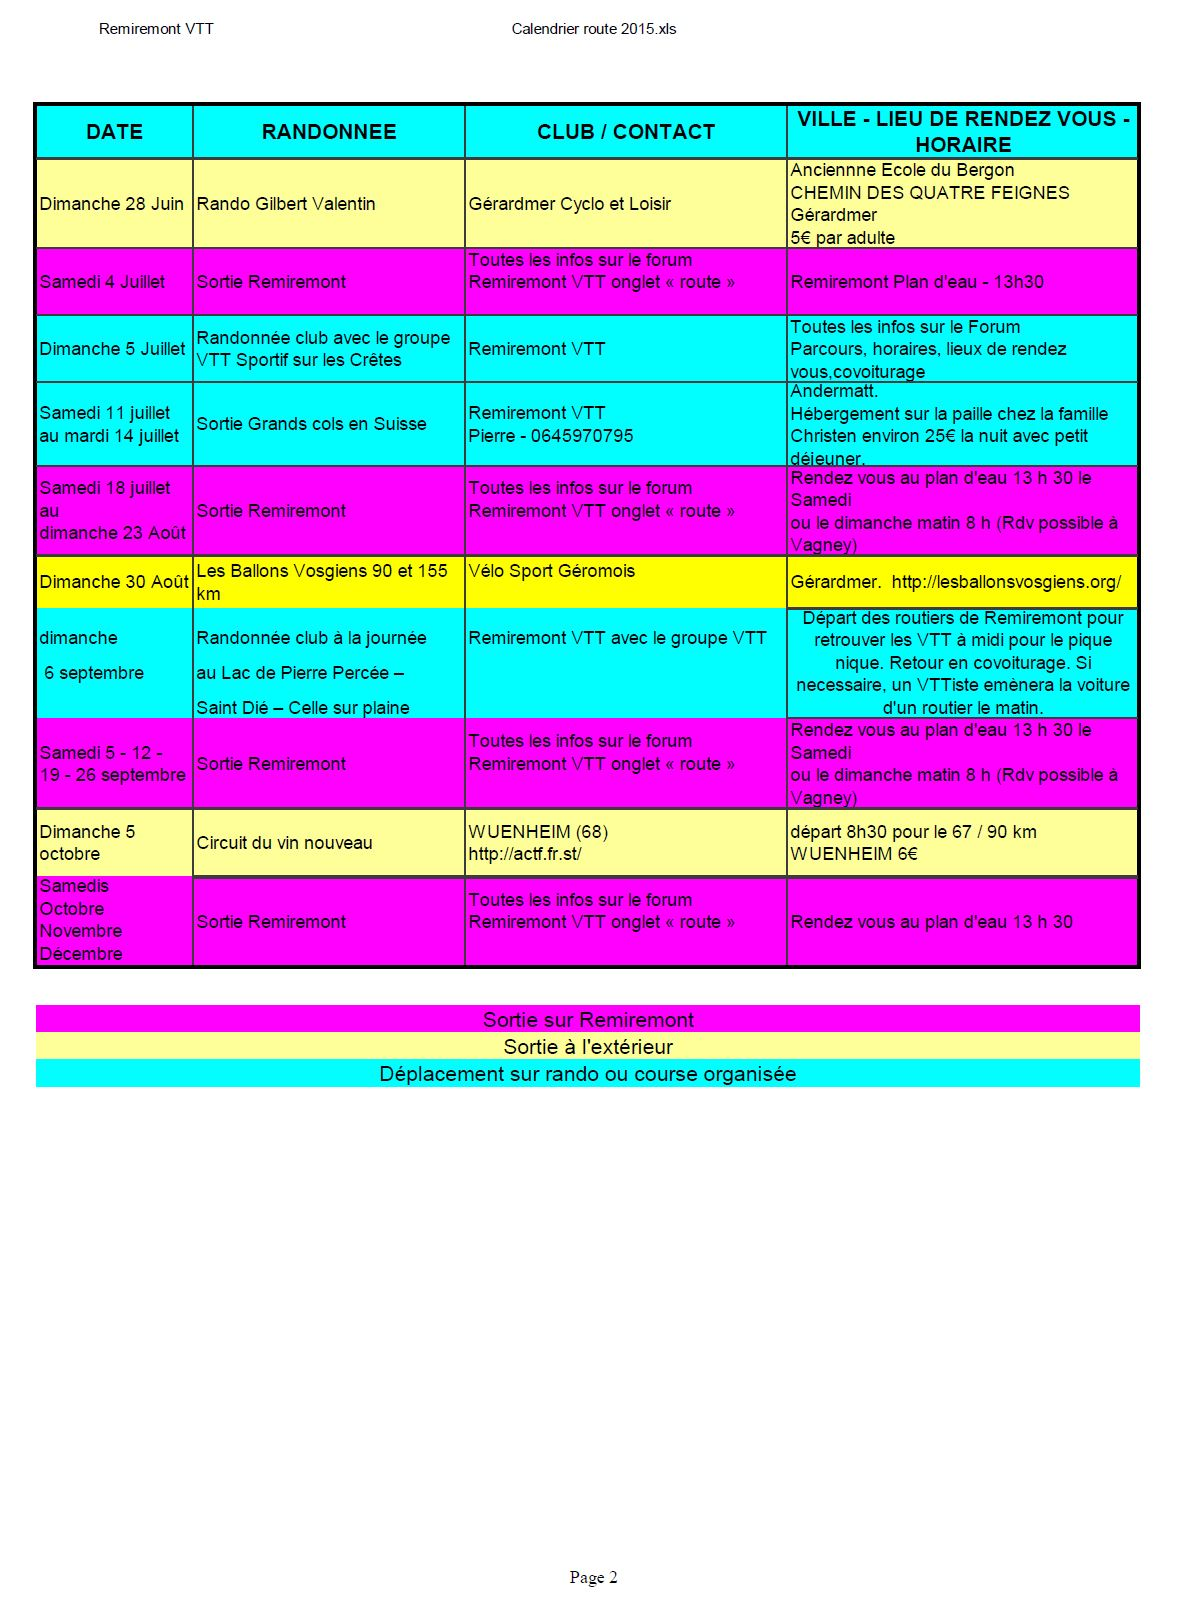 Calendrier route 2015 page2